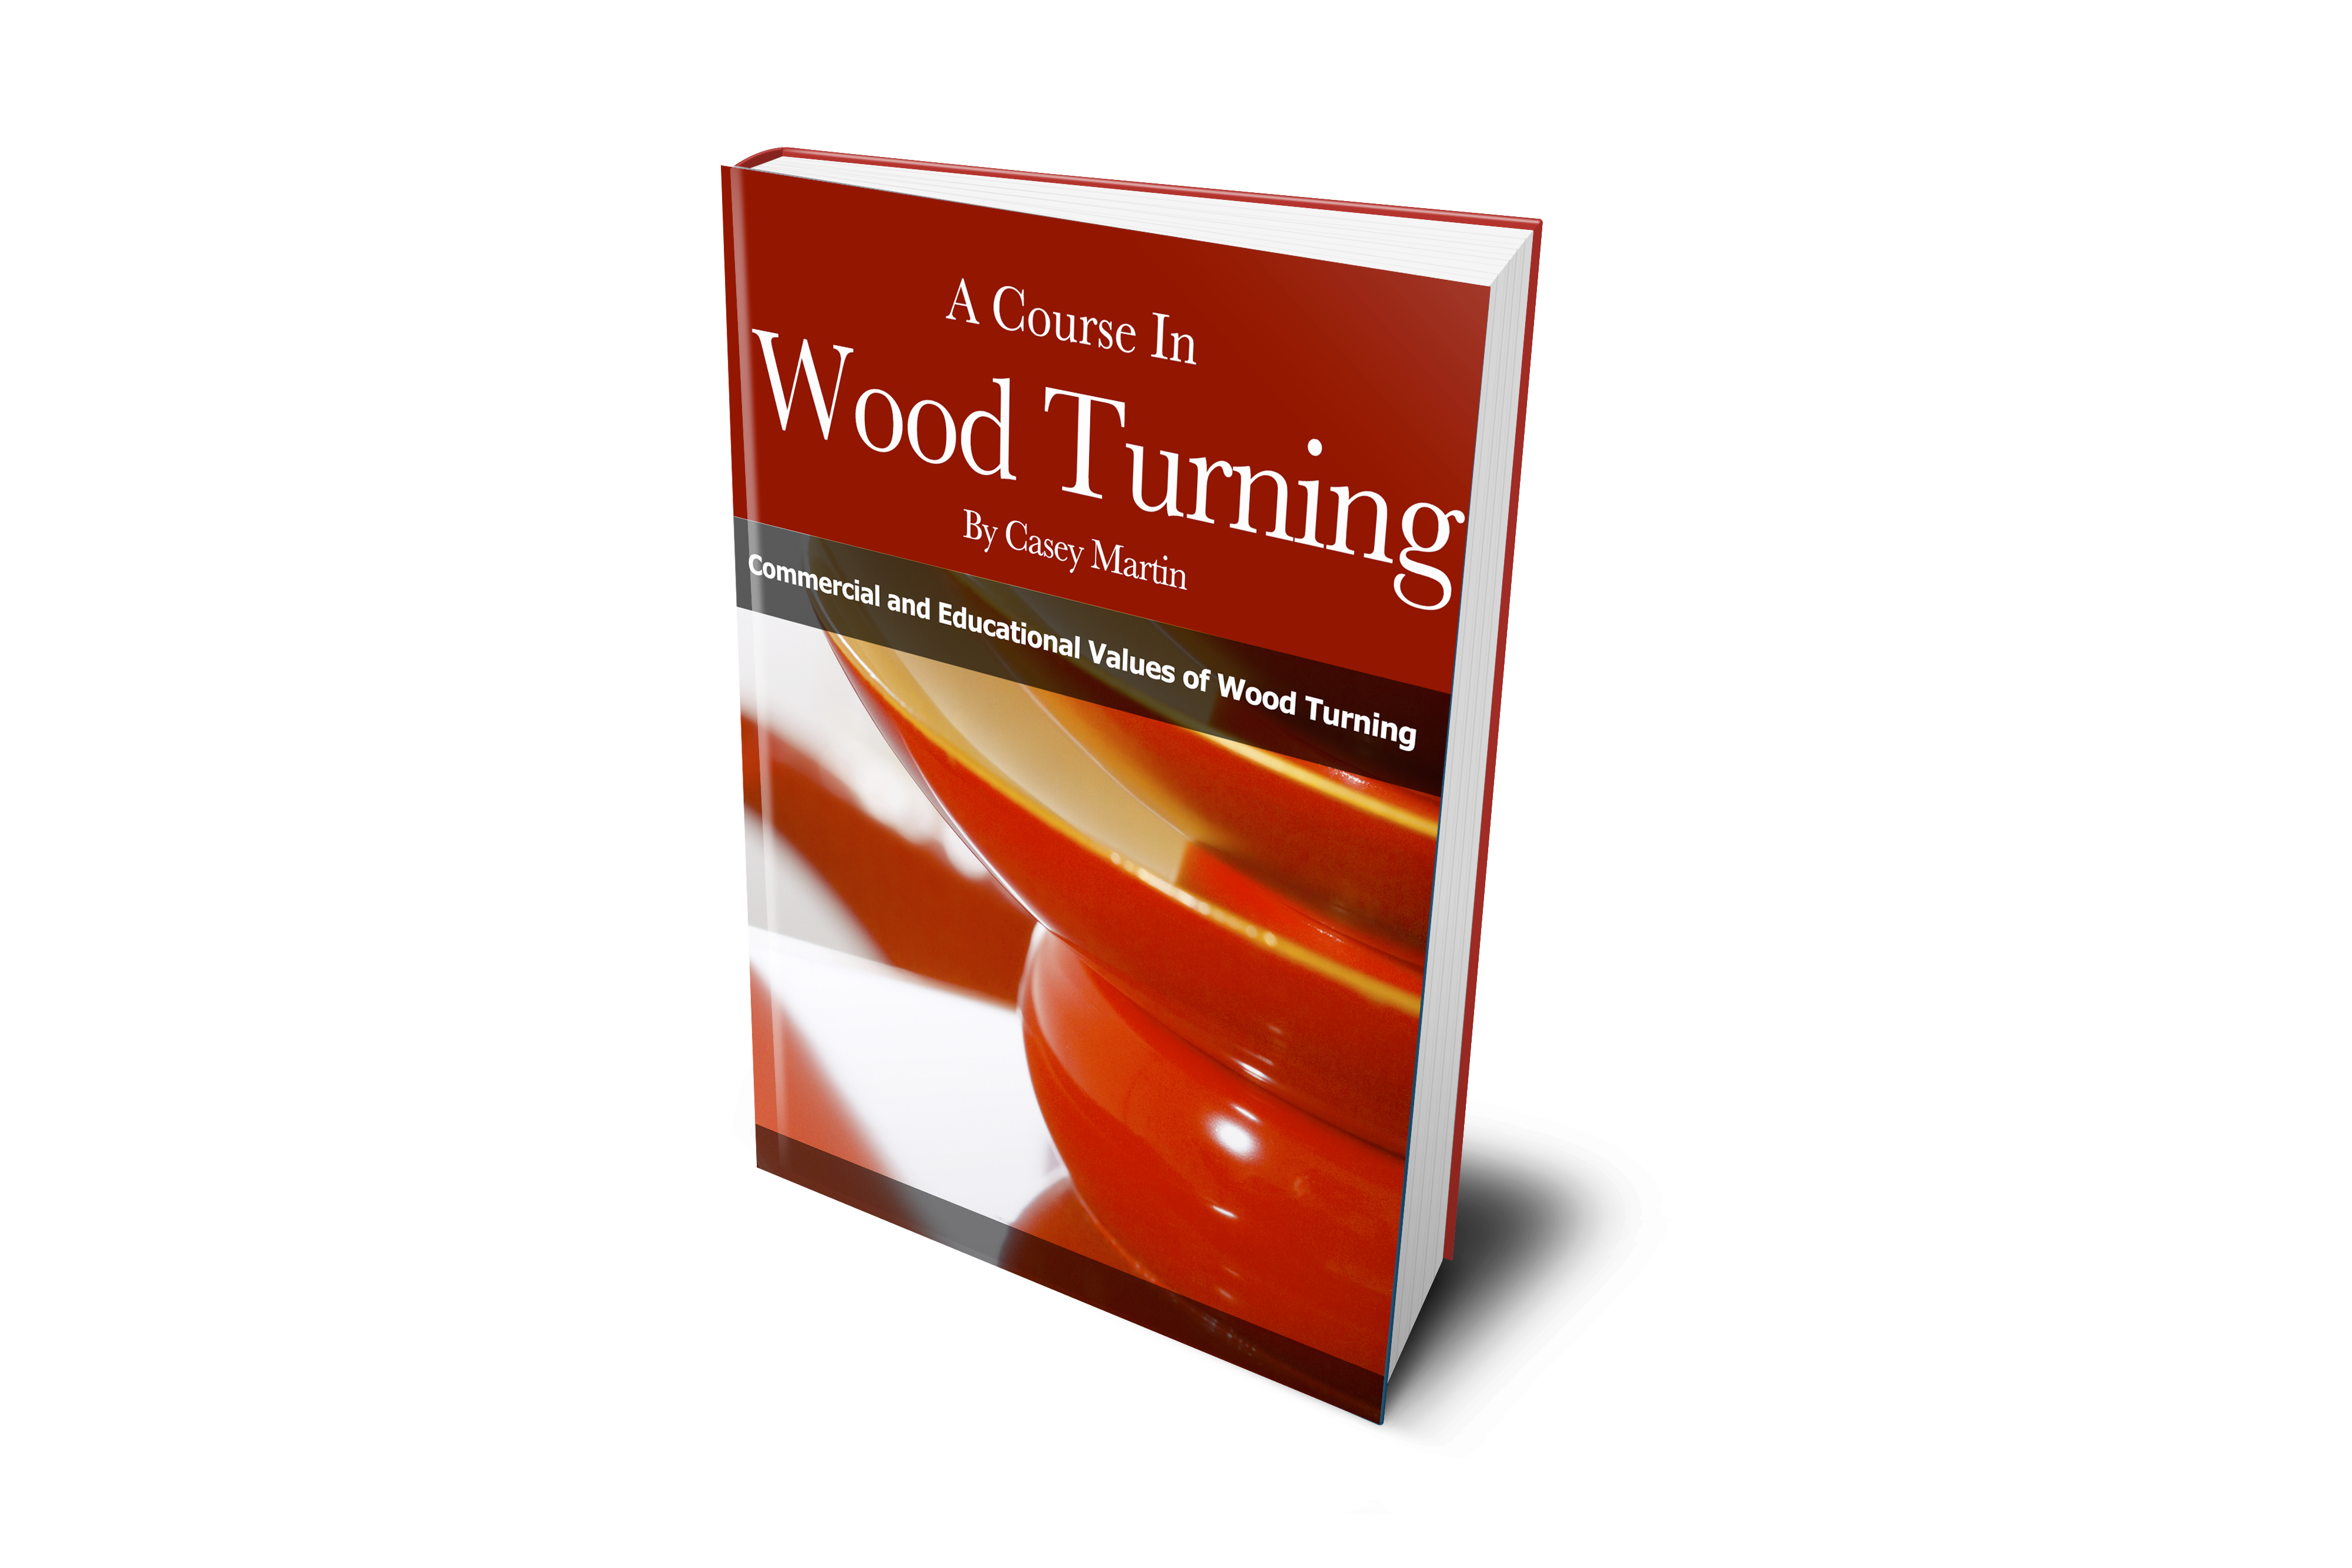 Blank ebook cover png. A course in woodturning